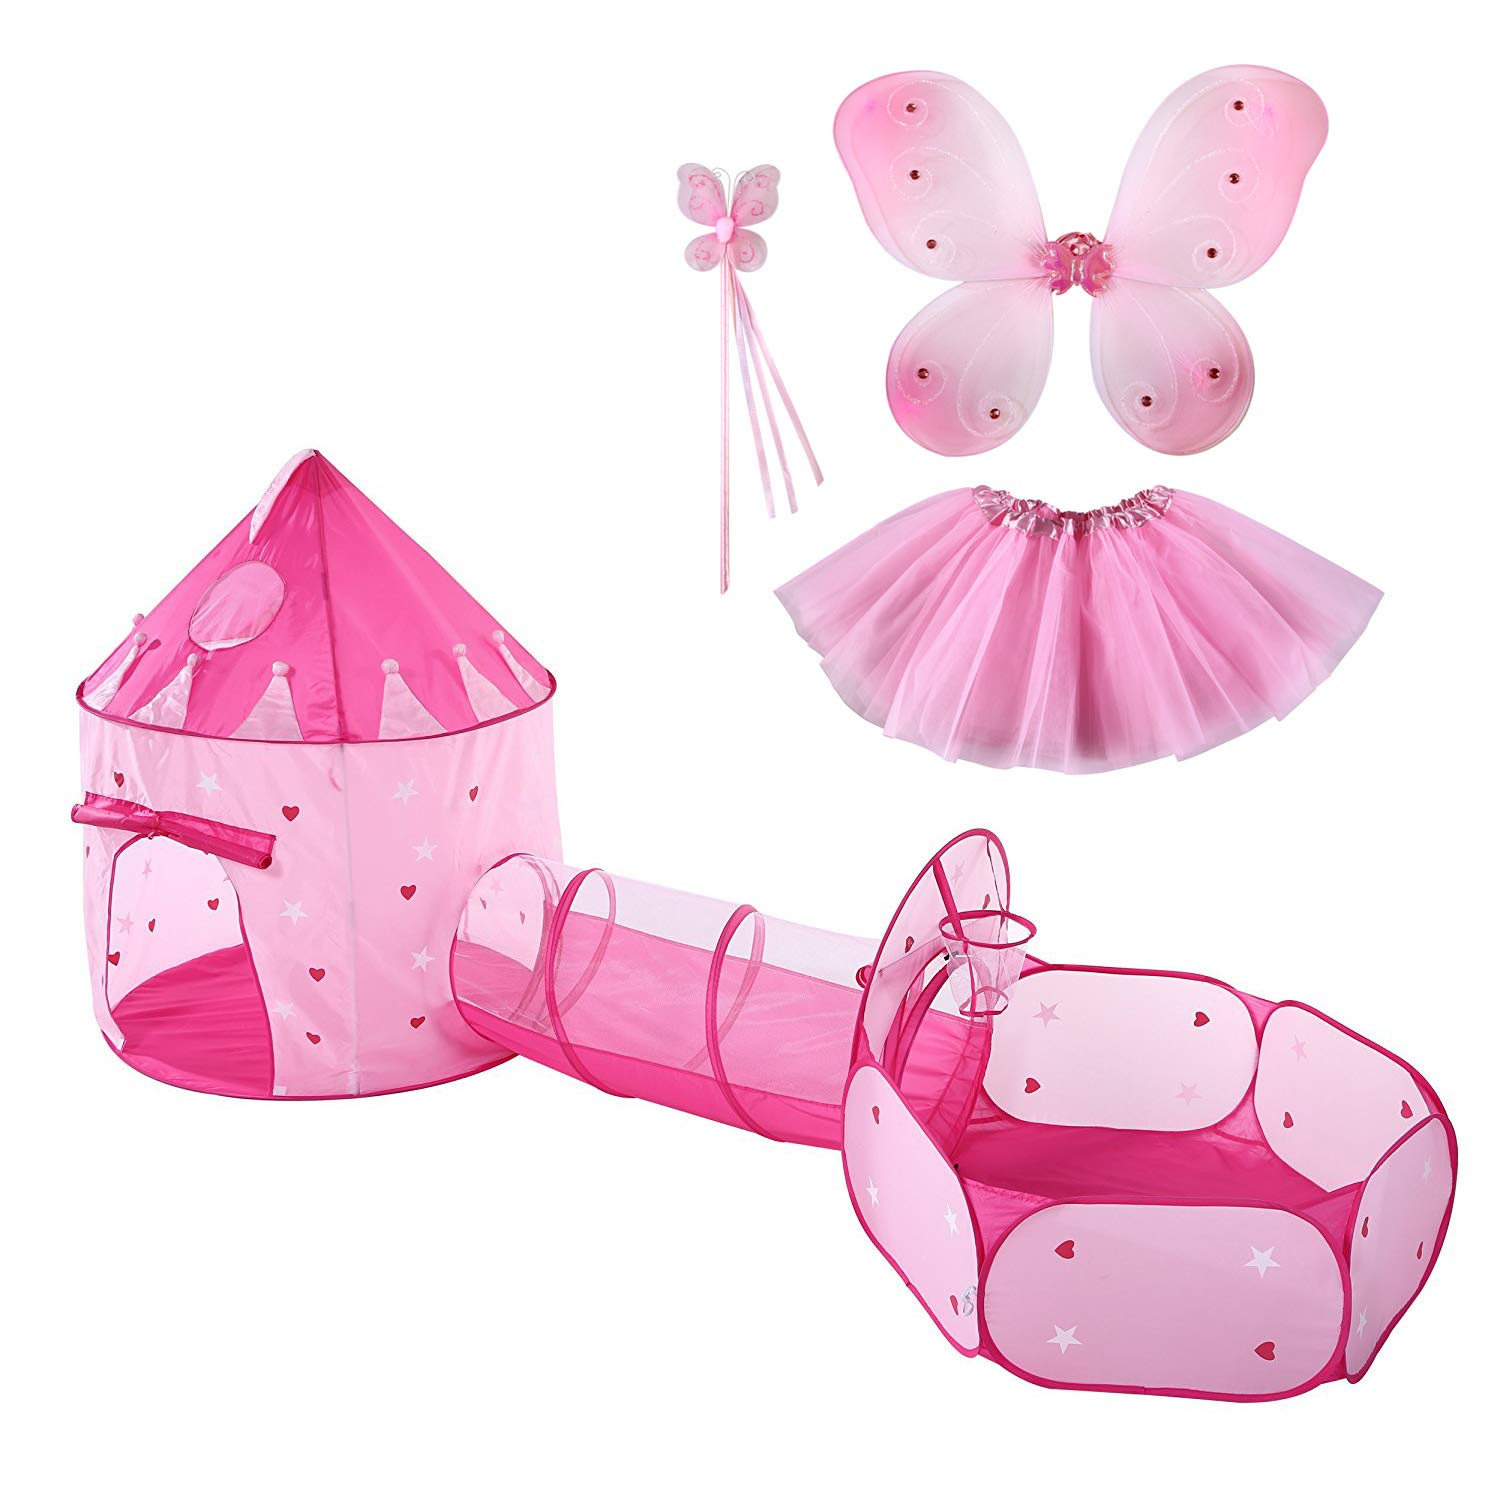 LyButty 3pc Kids Play Tent Crawl Tunnel and Ball Pit Pop Up Kids Playhouse Indoor/Outdoor Use,Bonus Butterfly Fairy Tutu Dress Up Costume Set Great Present for Girls(Stars Glow in The Dark